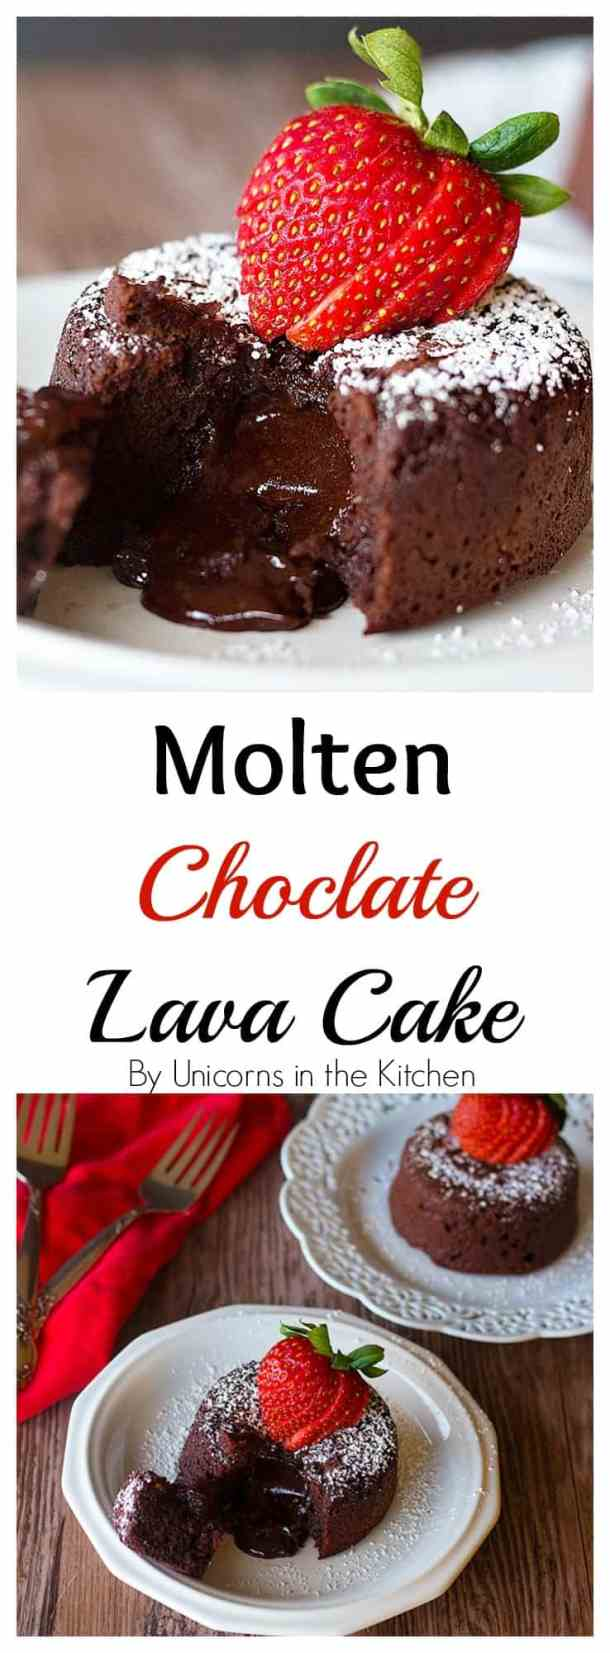 Molten Chocolate Cake is such a delicious classic! It's moist and so chocolaty and when you cut into it, luscious chocolate oozes out! This is the perfect recipe for an easy yet fancy dessert.